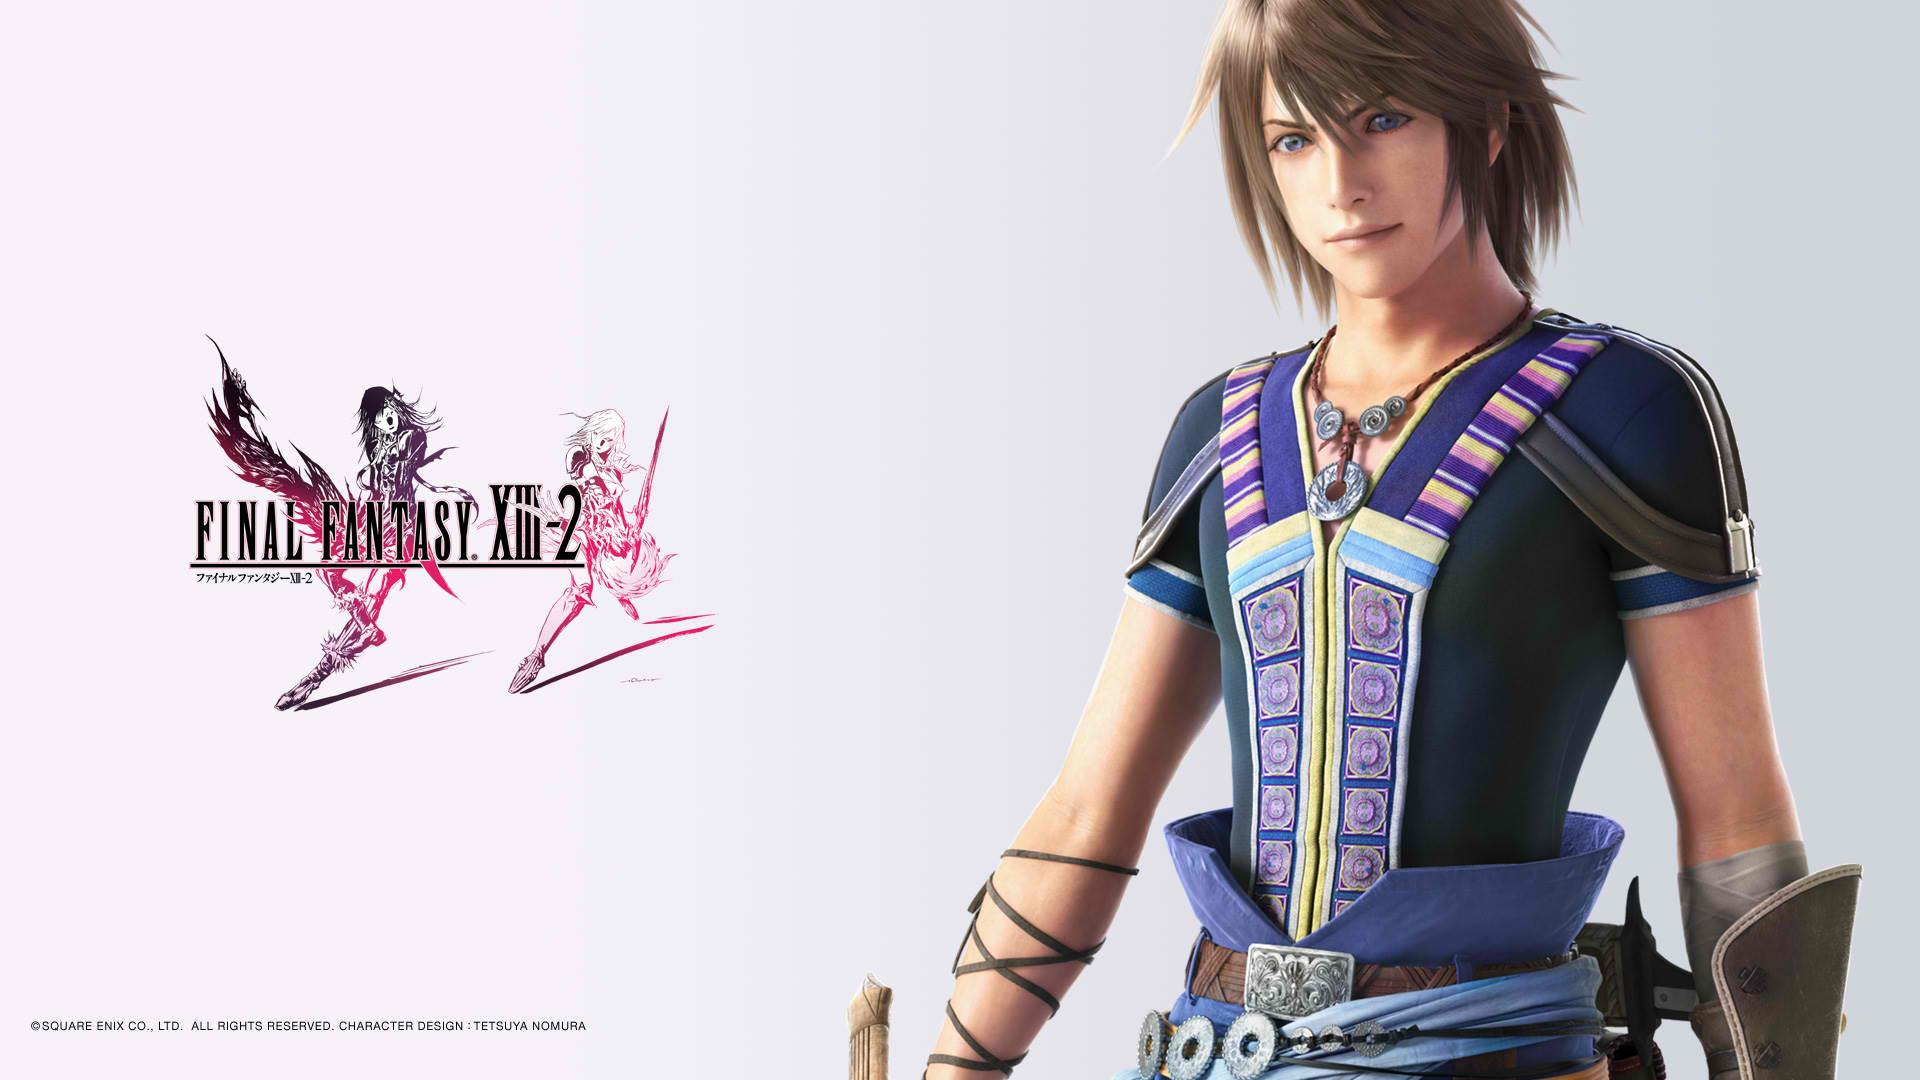 Nine Stunning FFXIII 2 Wallpapers available for download 1920x1080